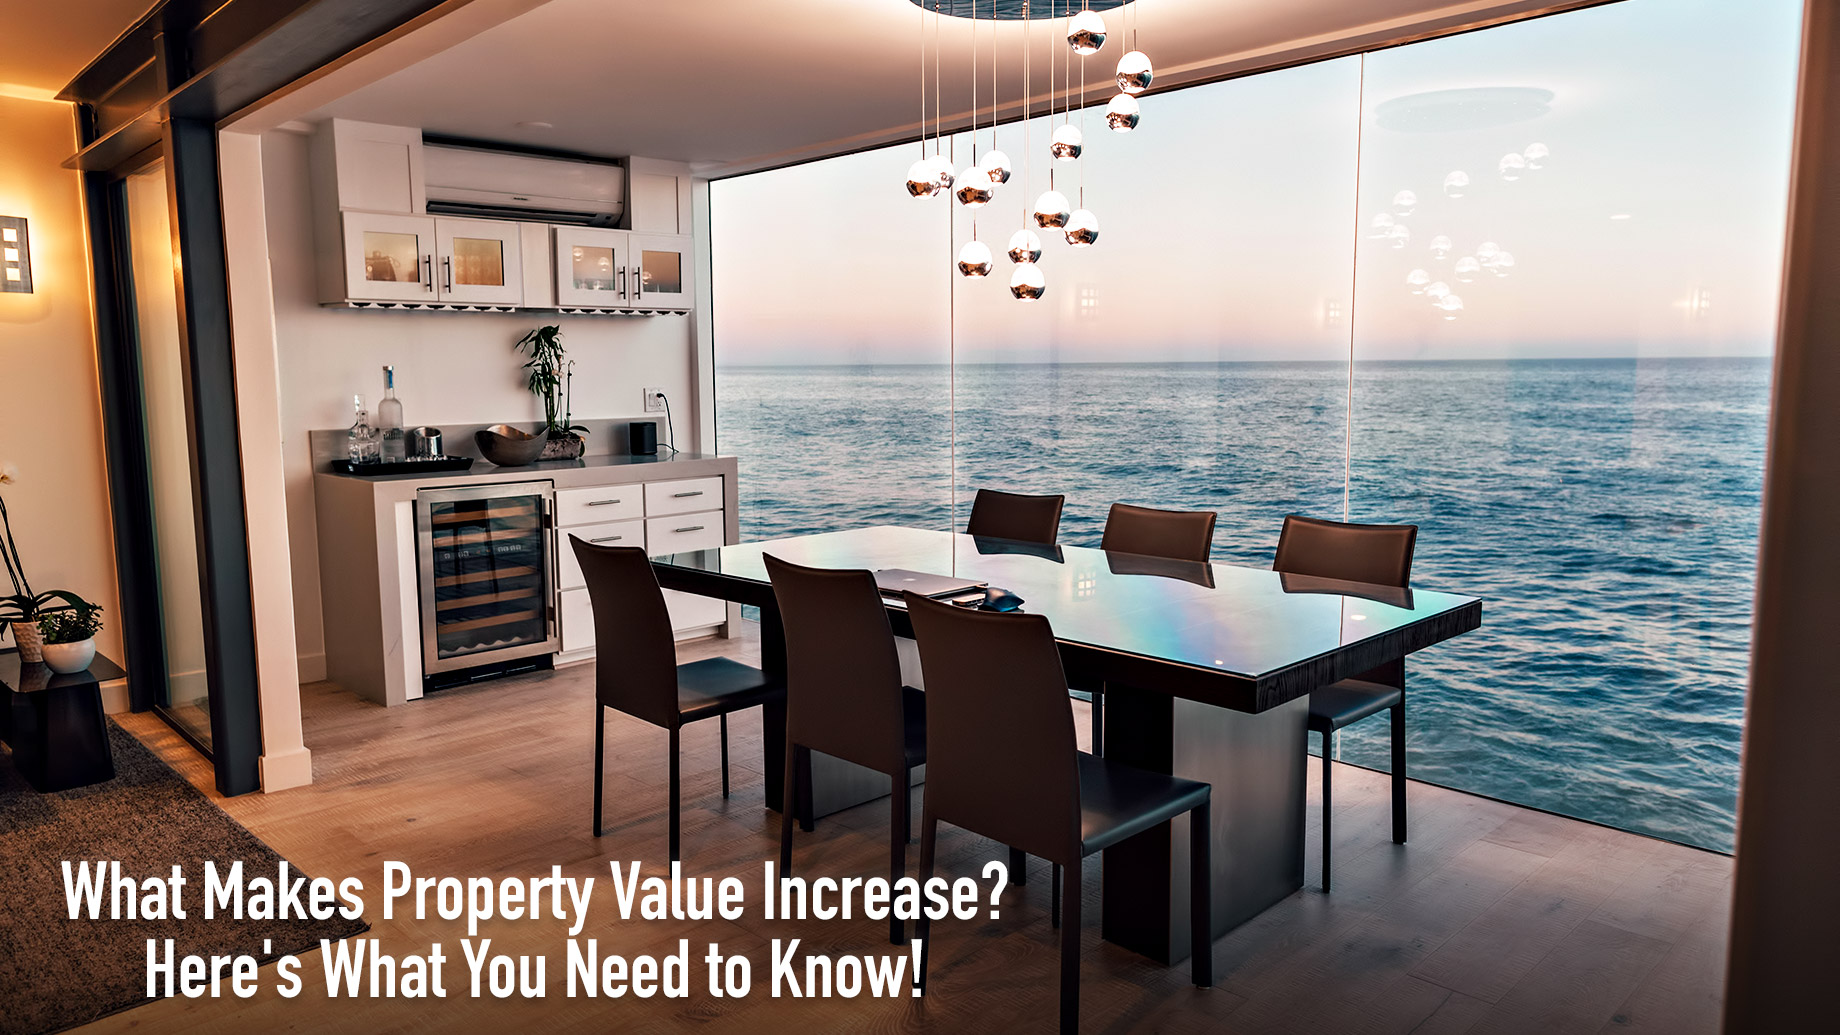 What Makes Property Value Increase? Here's What You Need to Know!